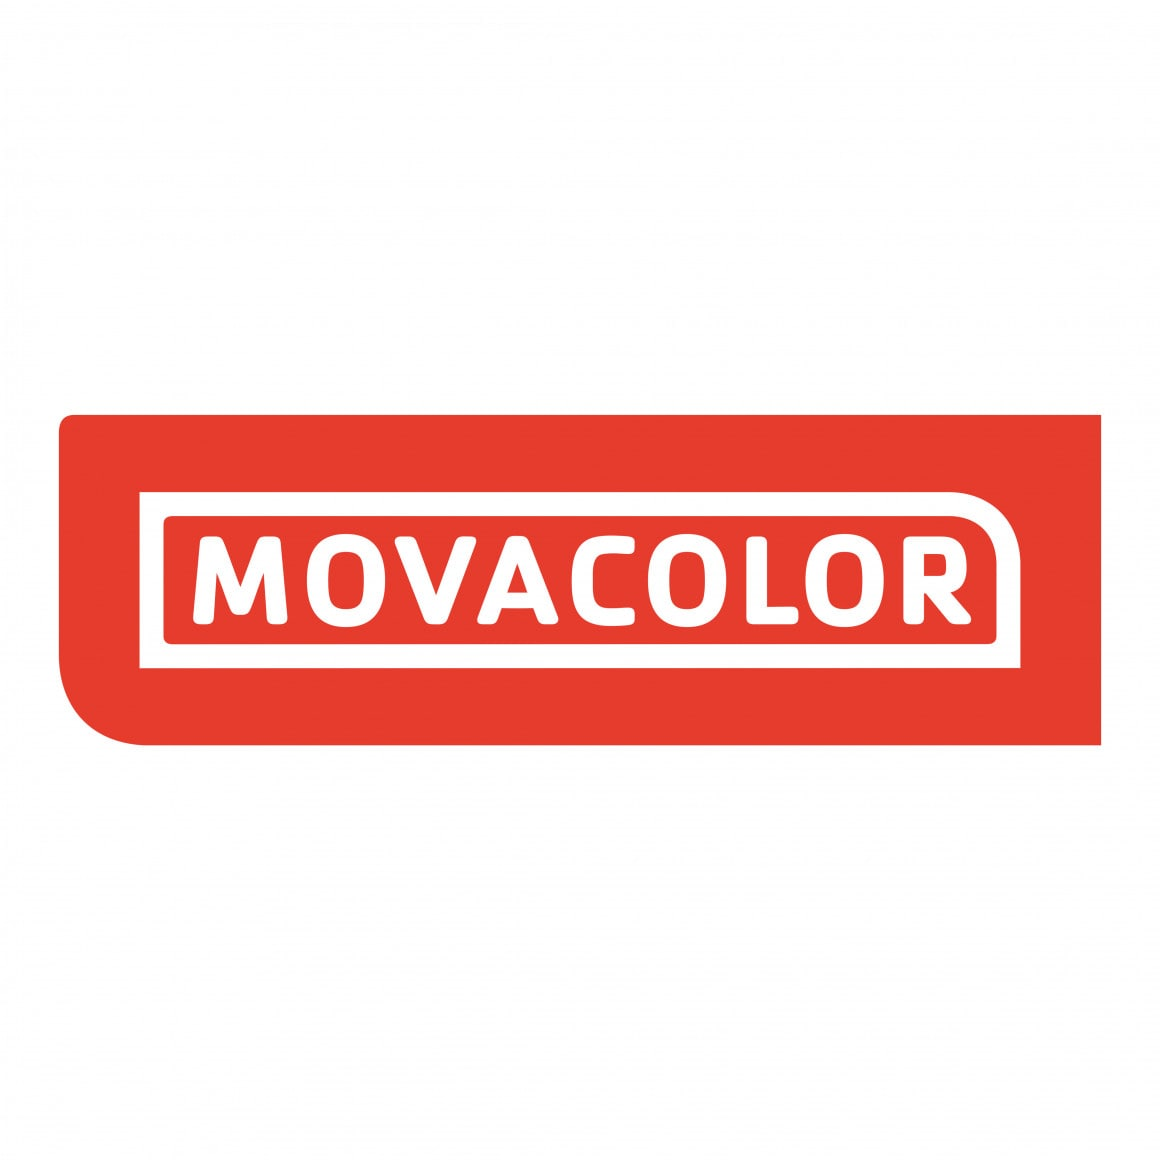 The complete Movacolor product range.